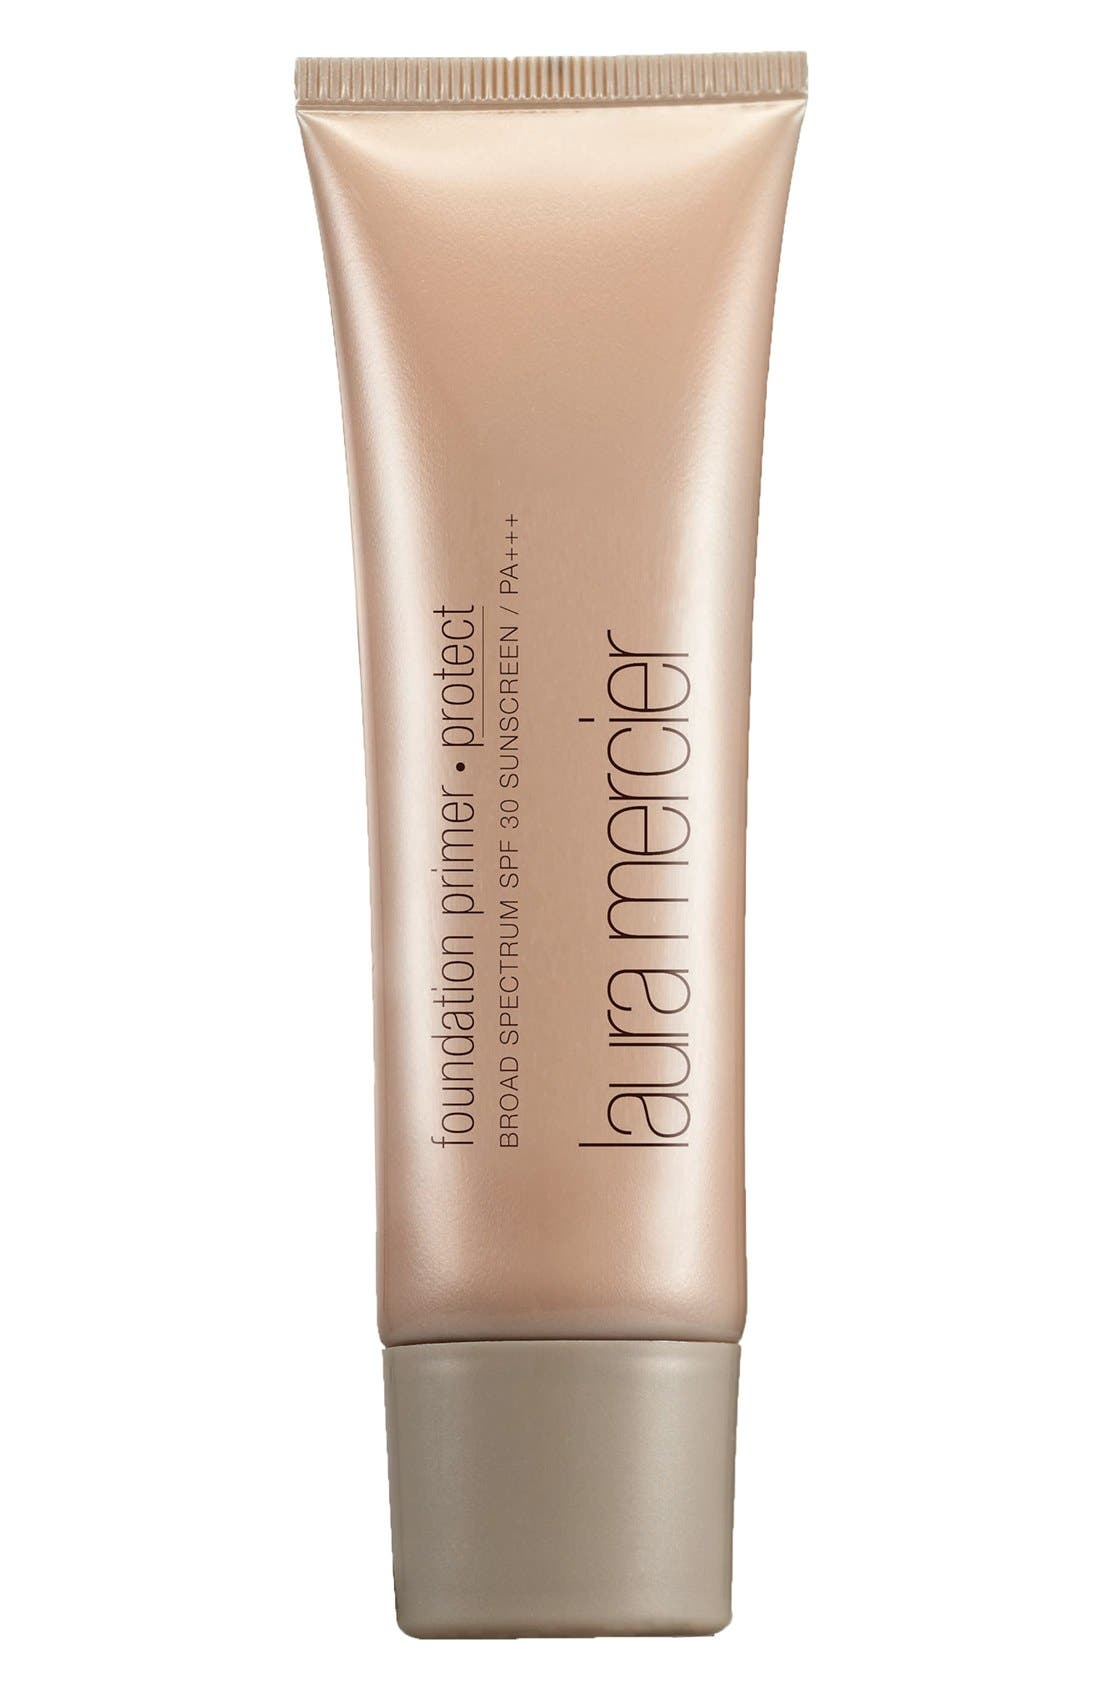 Foundation Primer Protect Broad Spectrum SPF 30/PA+++,                             Main thumbnail 1, color,                             NO COLOR